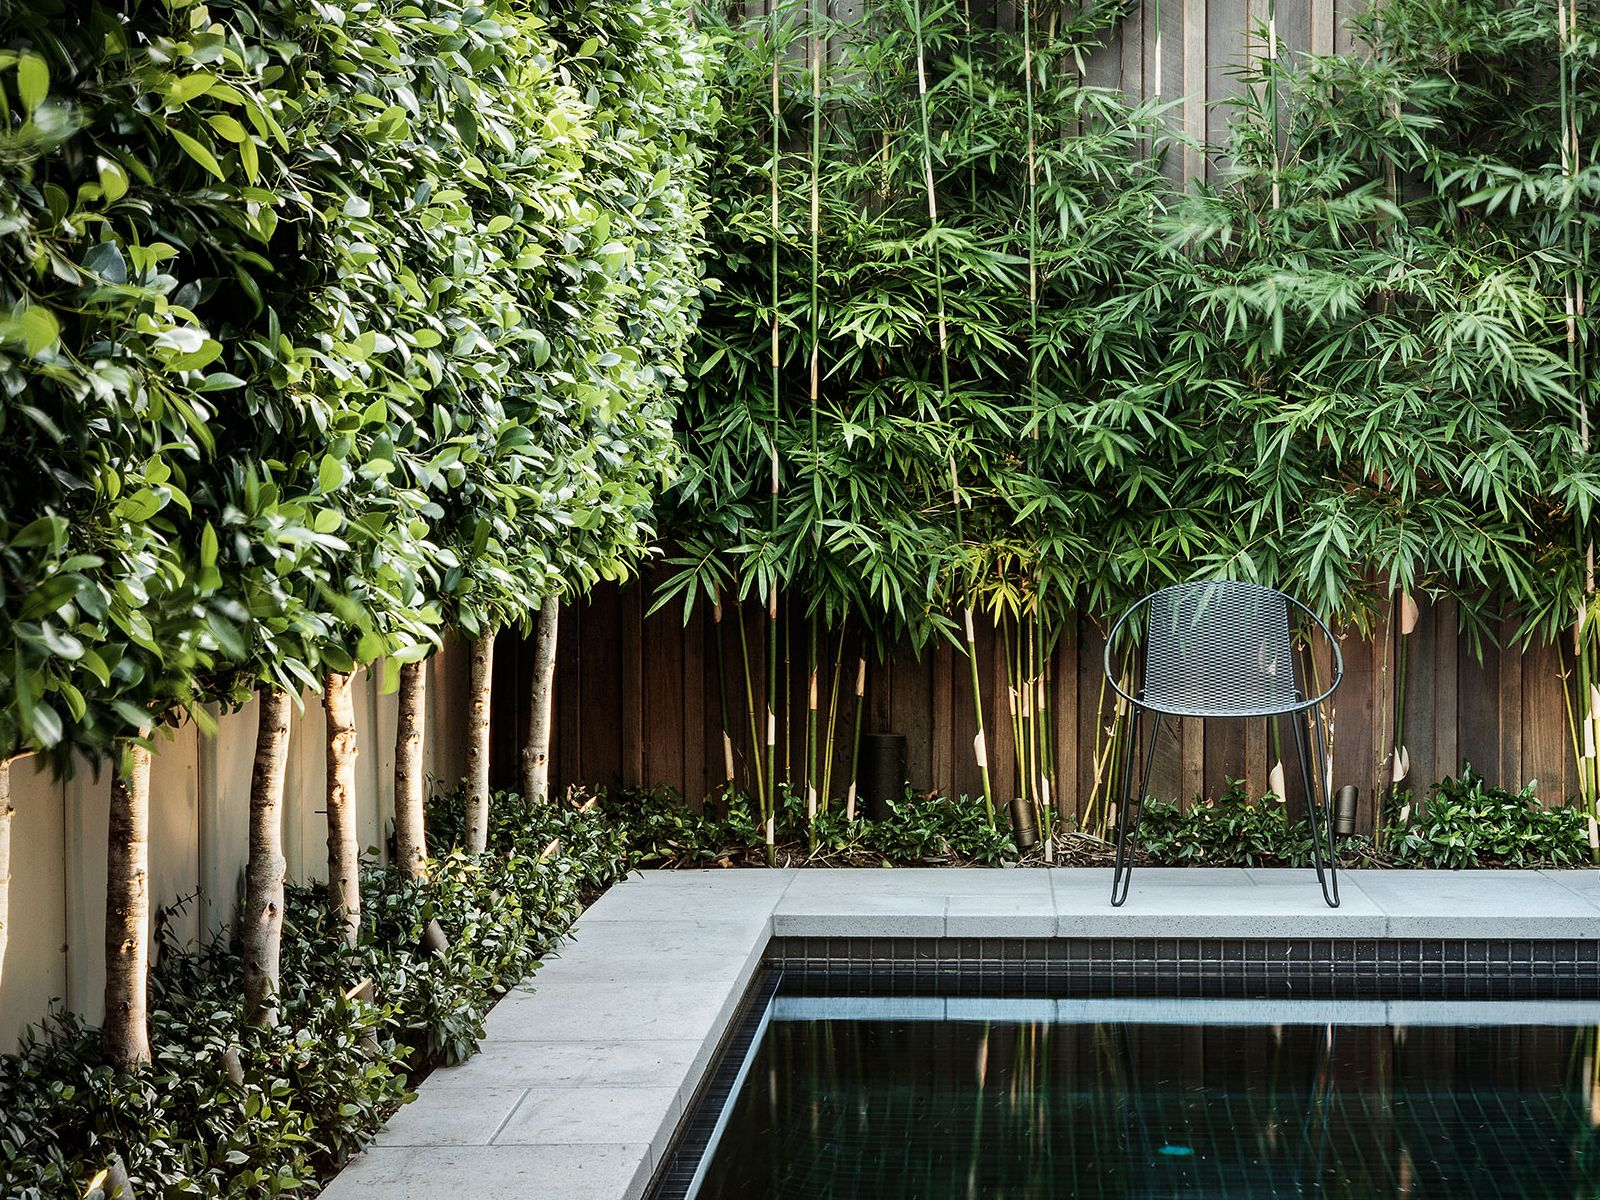 Jack merlo design more outdoor garden ideas landscape design gardening - A Wall Of Trees And Bamboo Help To Hide A Fence And Create A Soft Wall Modern Garden Designgarden Design Ideasgarden Ideasbackyard Landscape